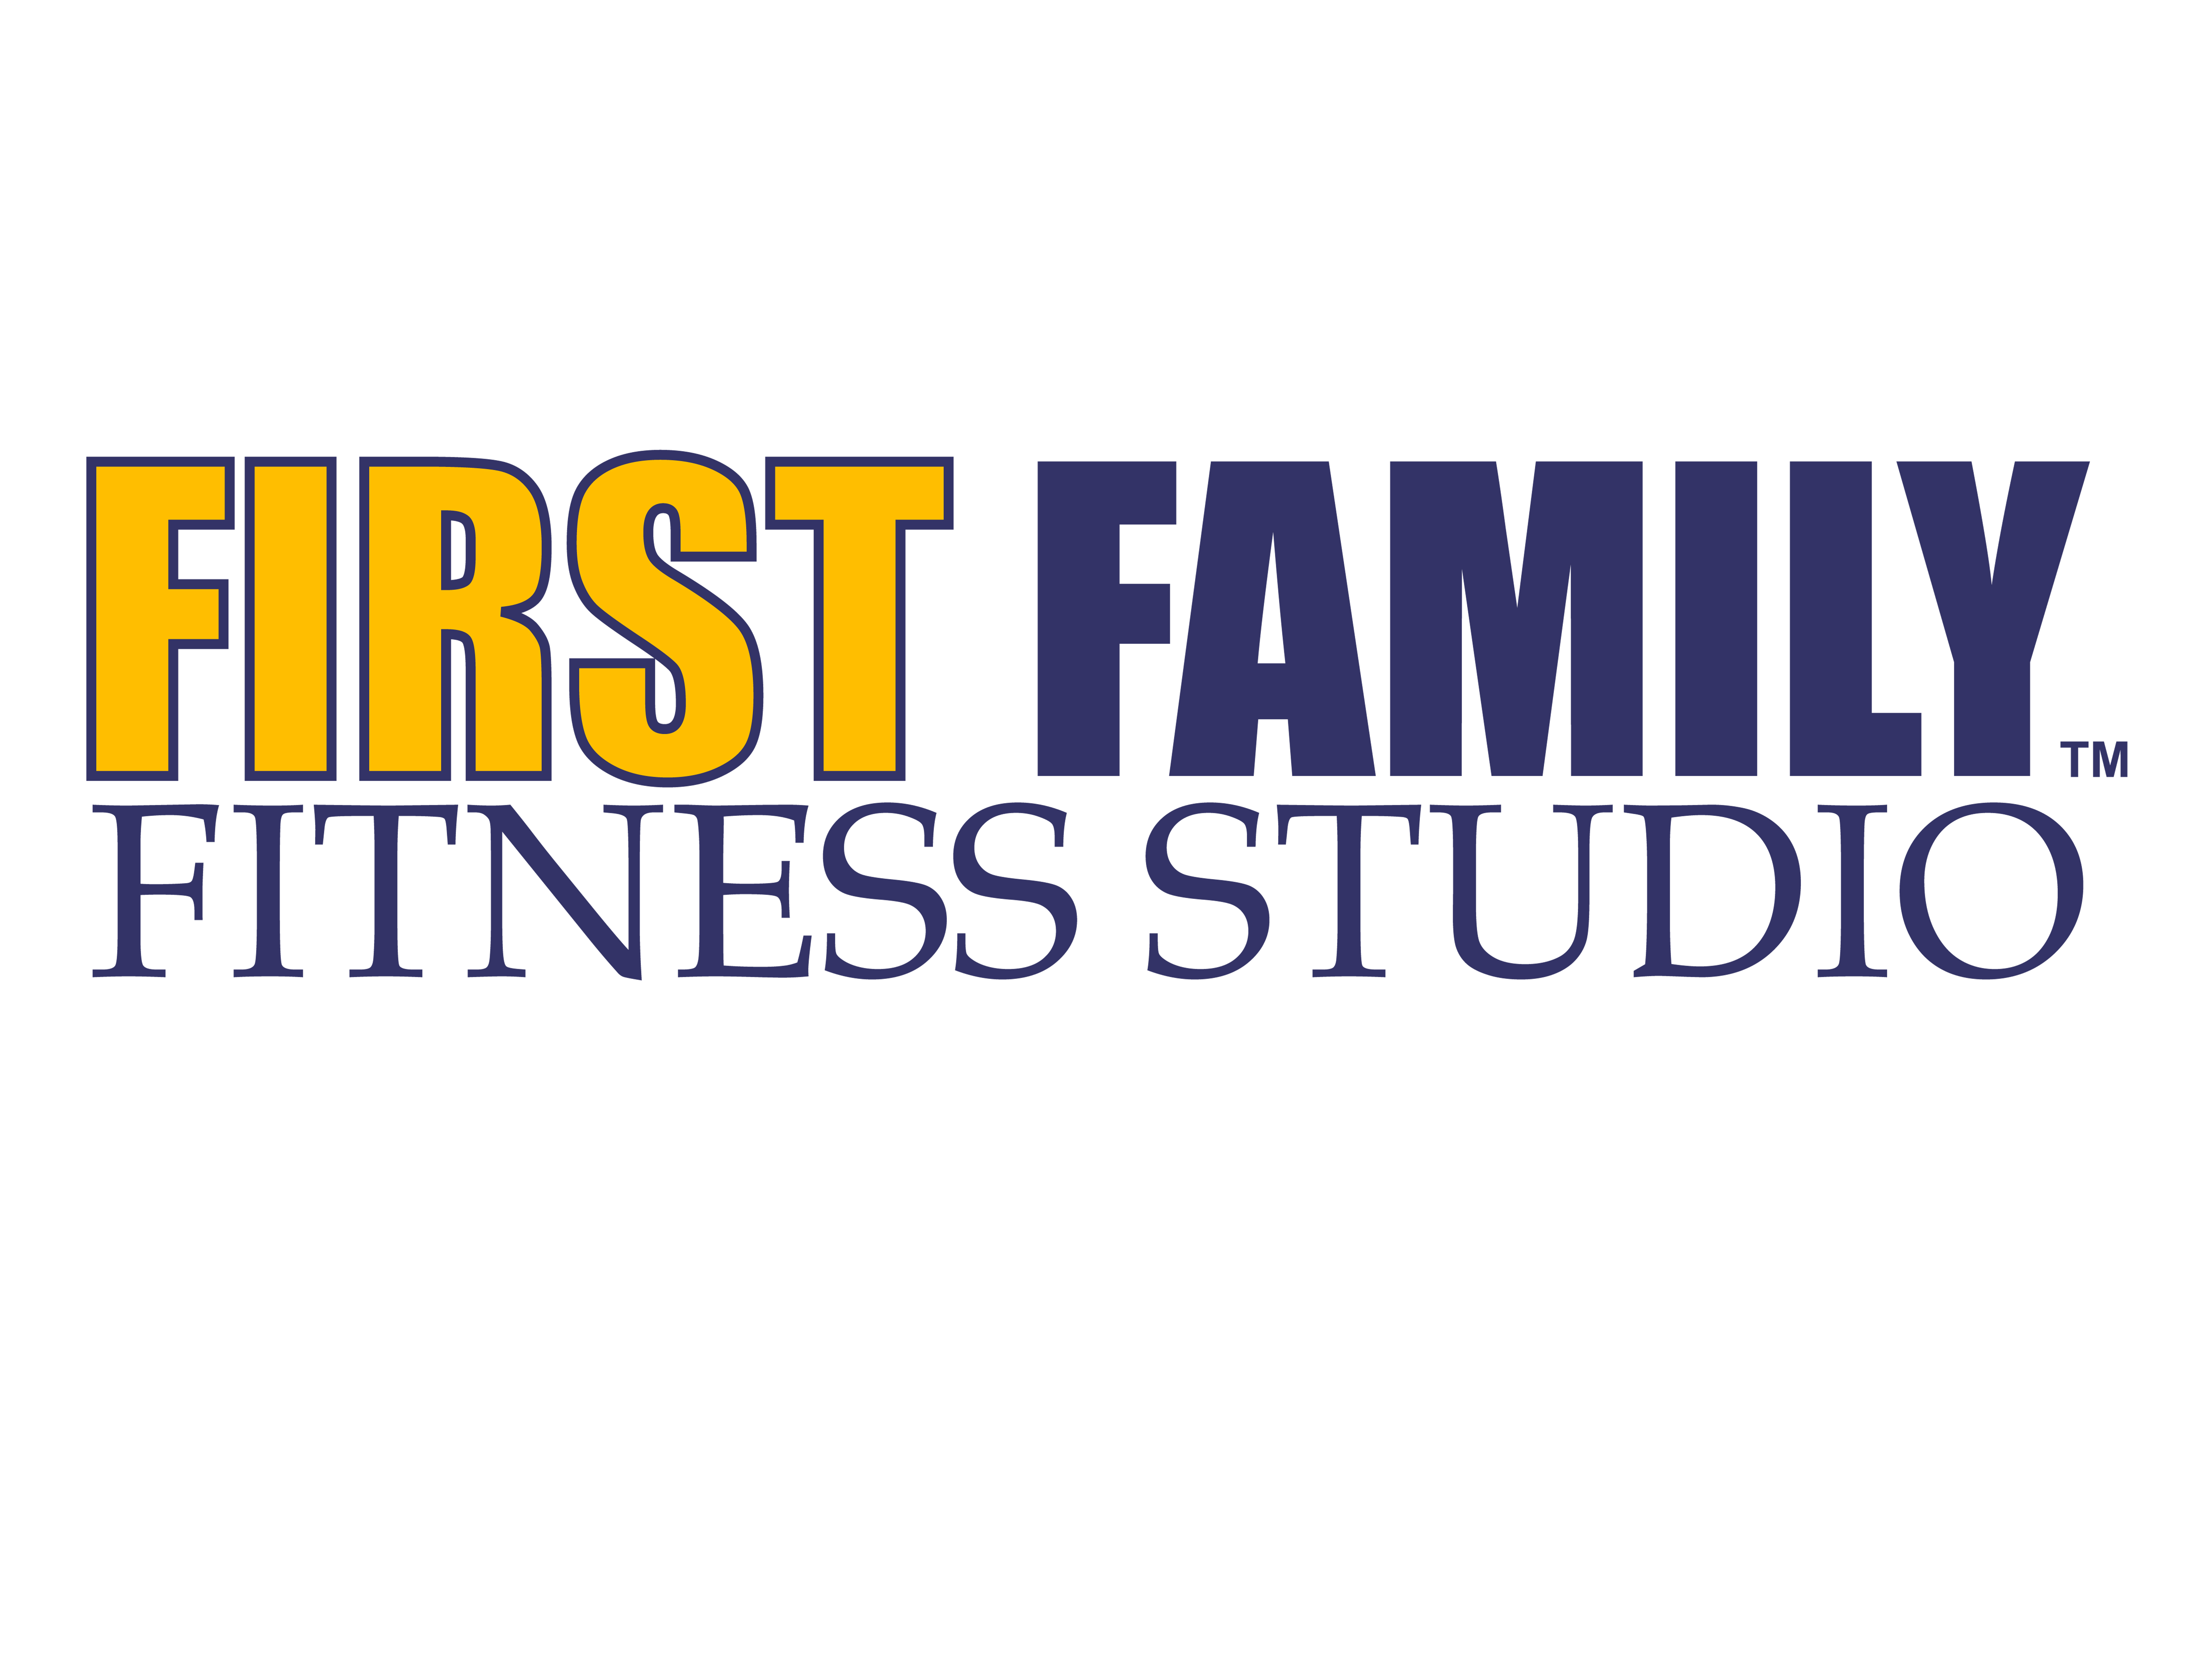 First Family Fitness